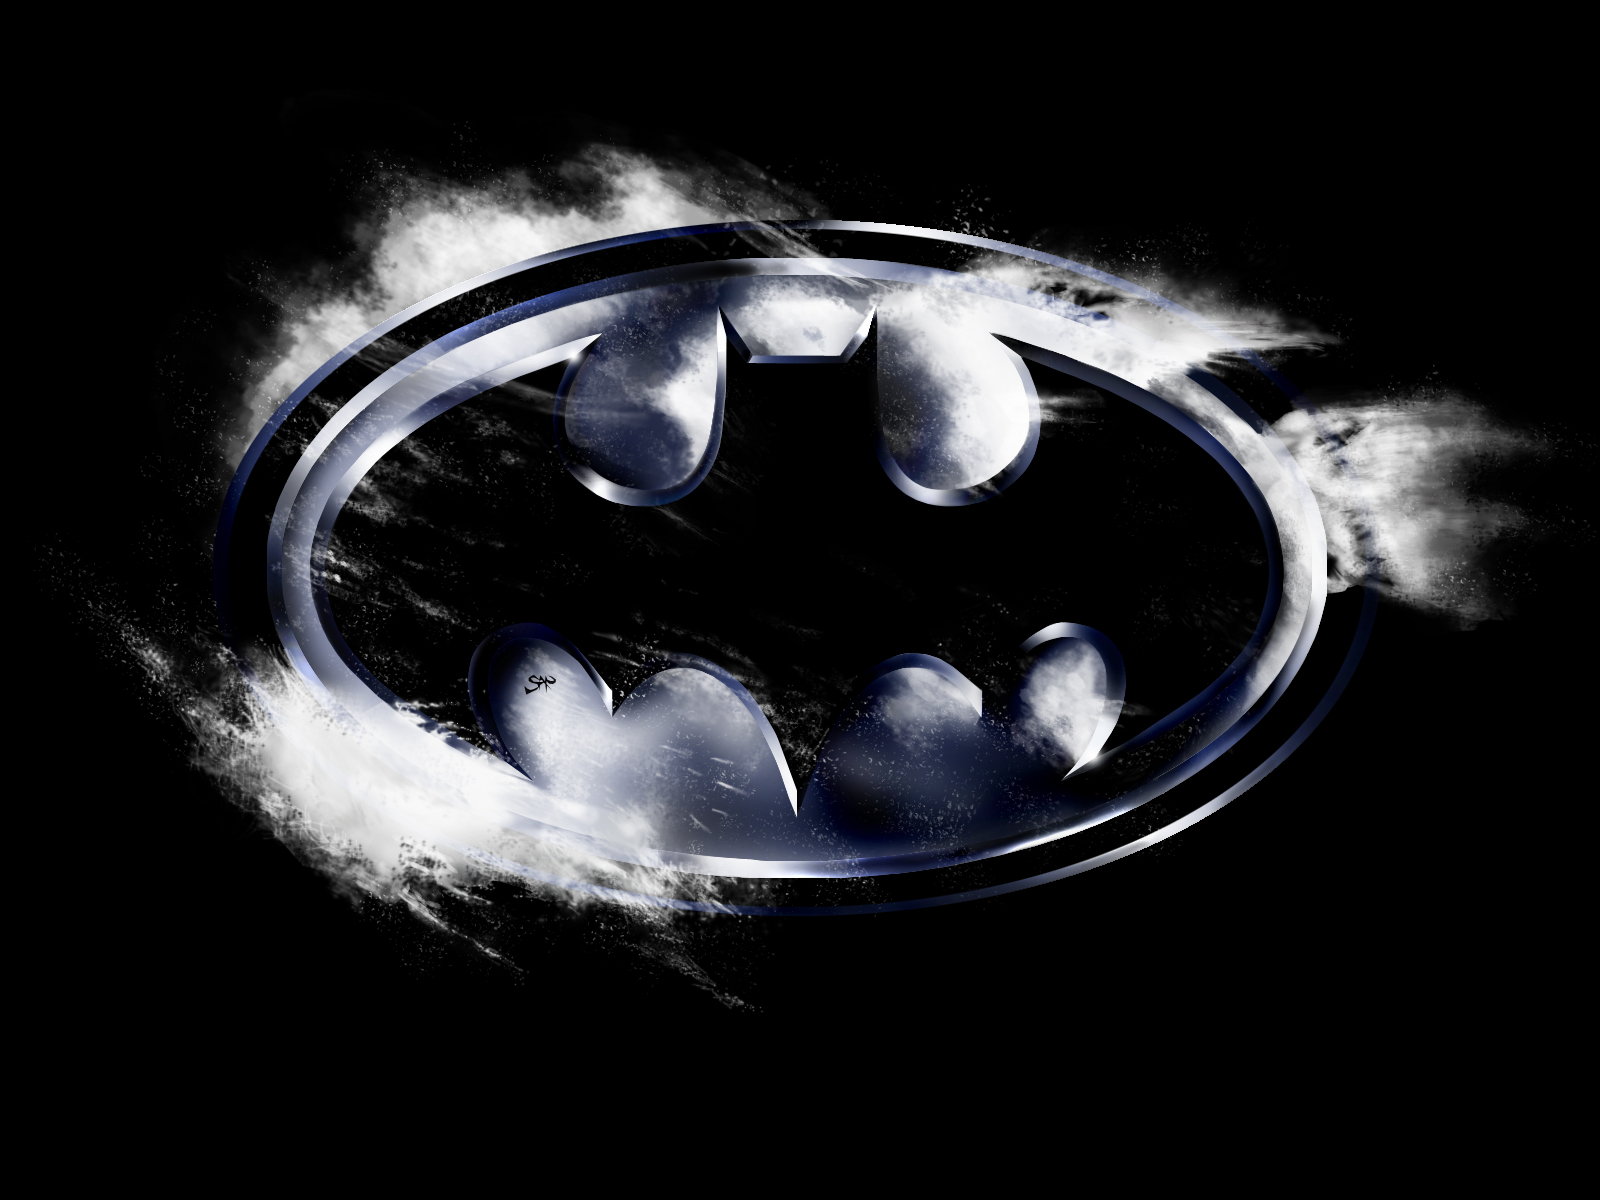 Watch Movie Batman Begins Full Movie HD